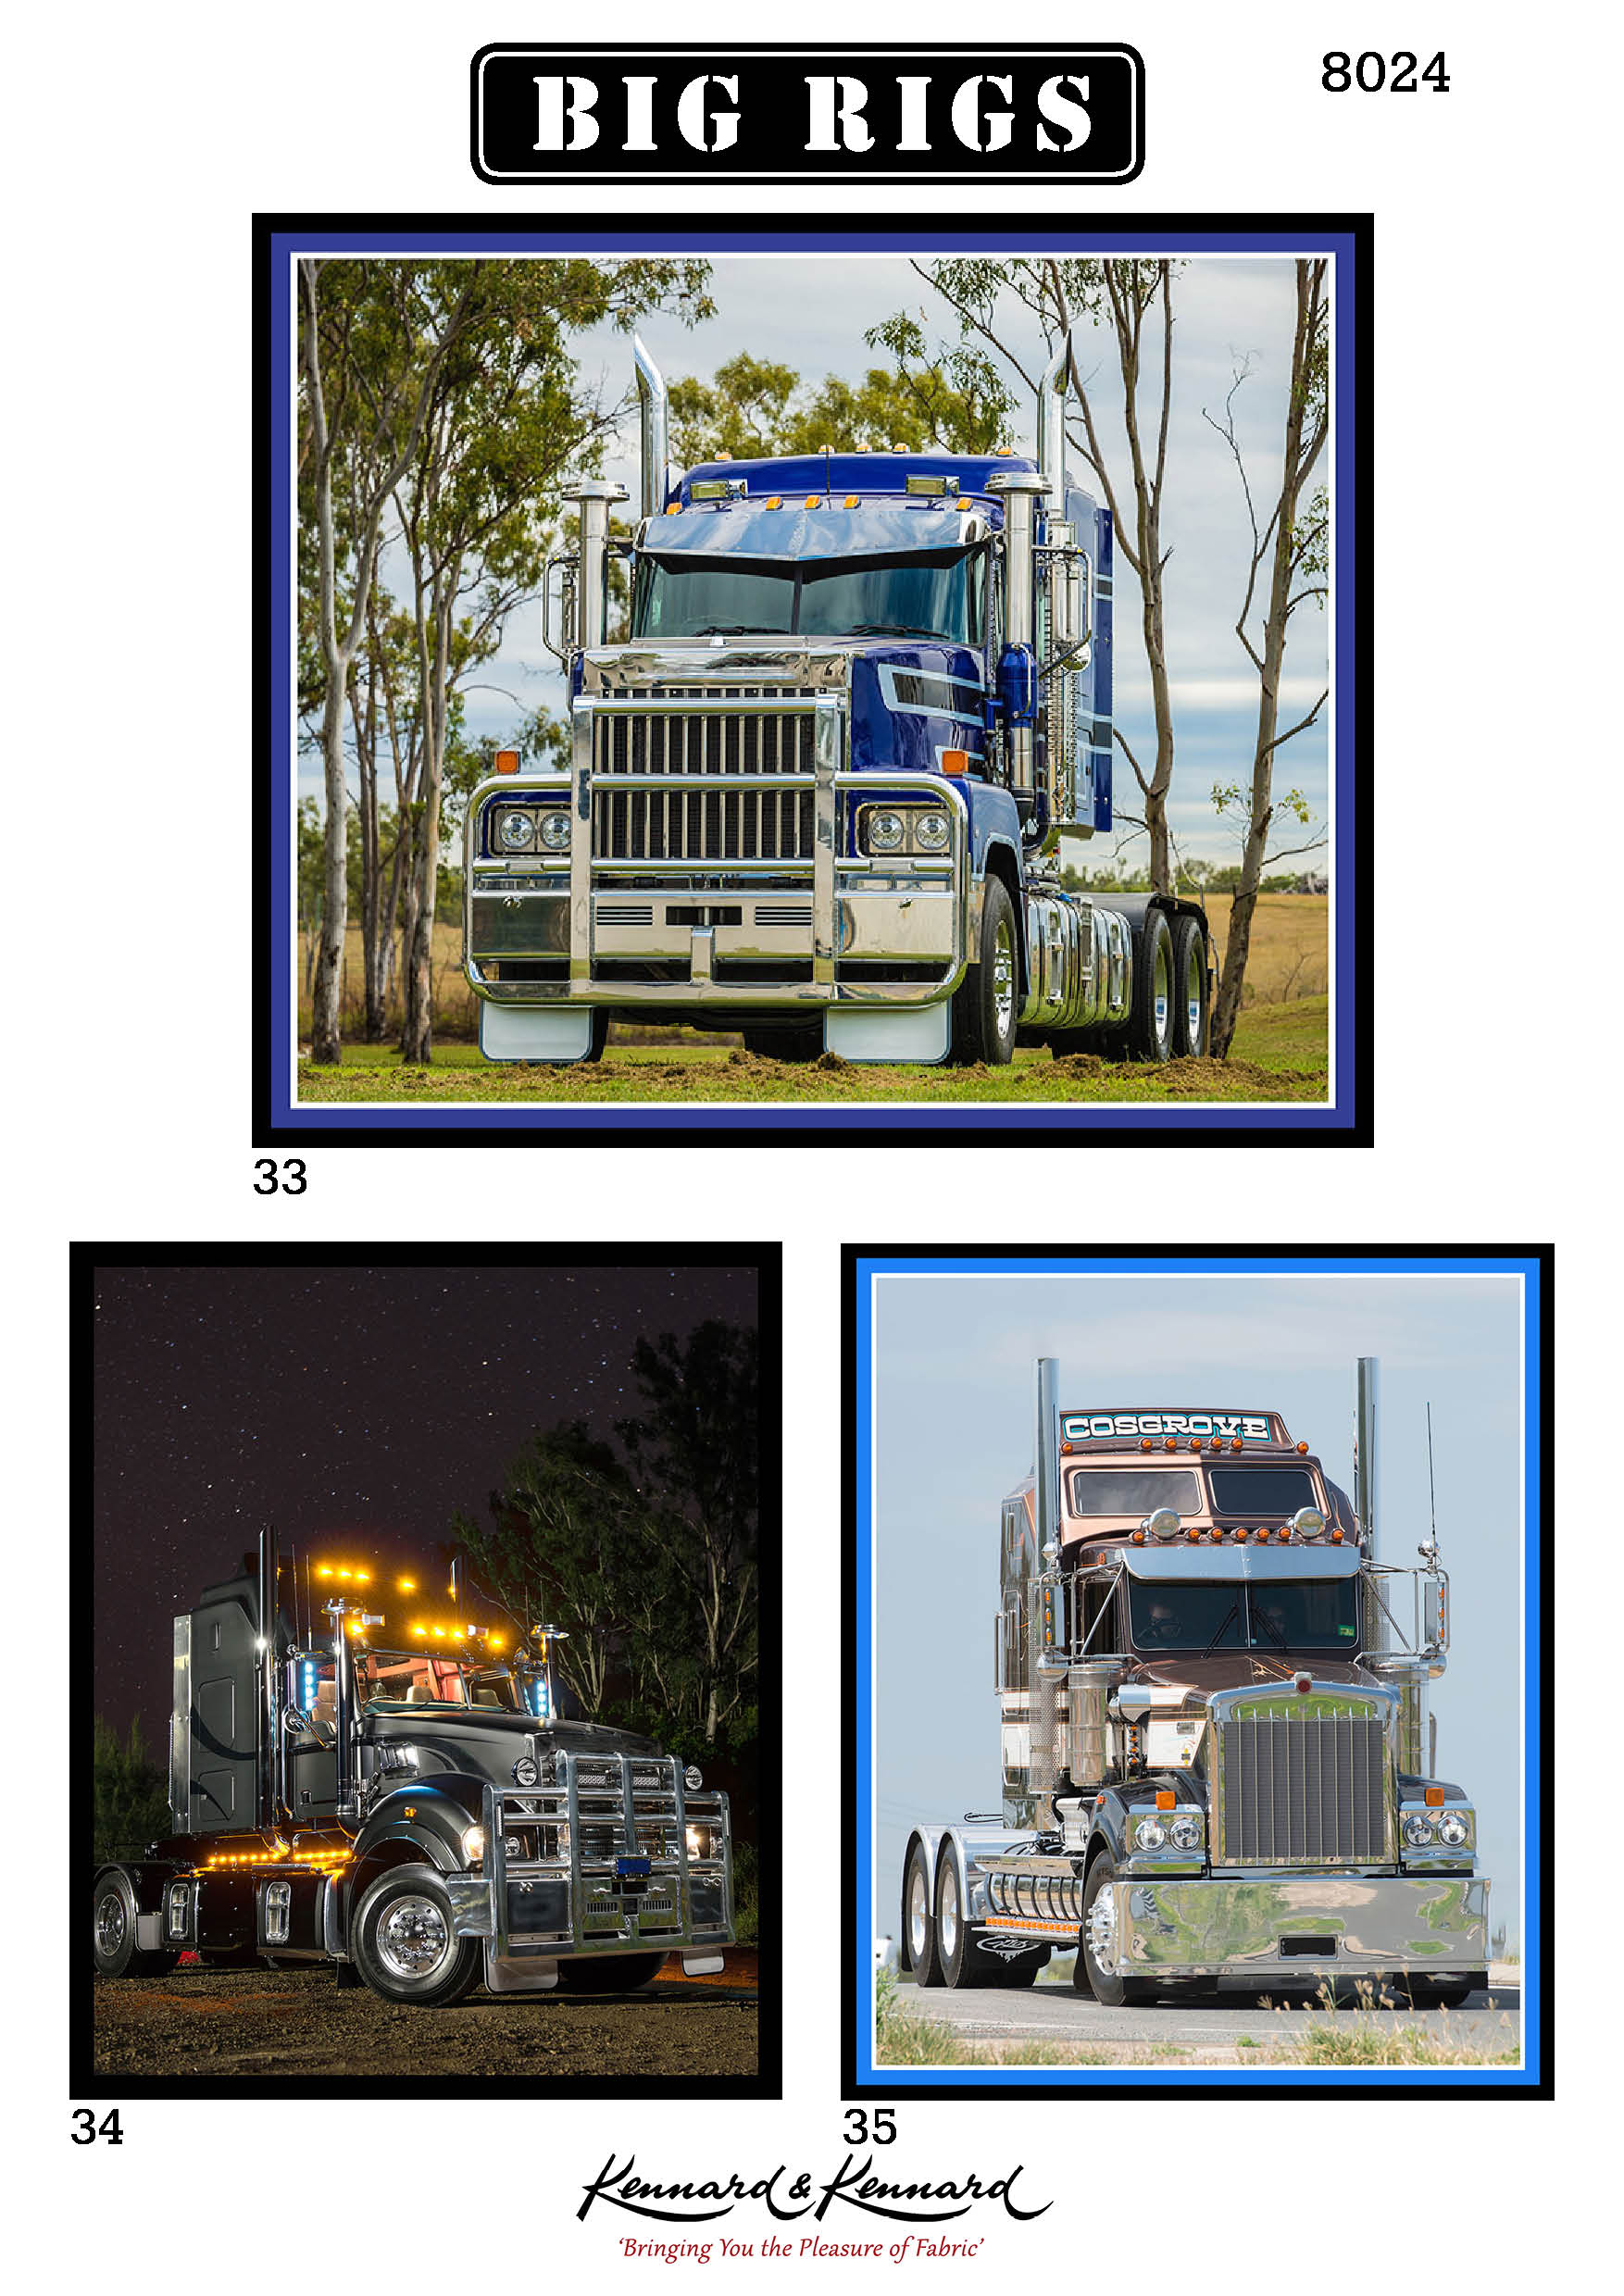 Big Rigs 8024 by Kennard & Kennard2